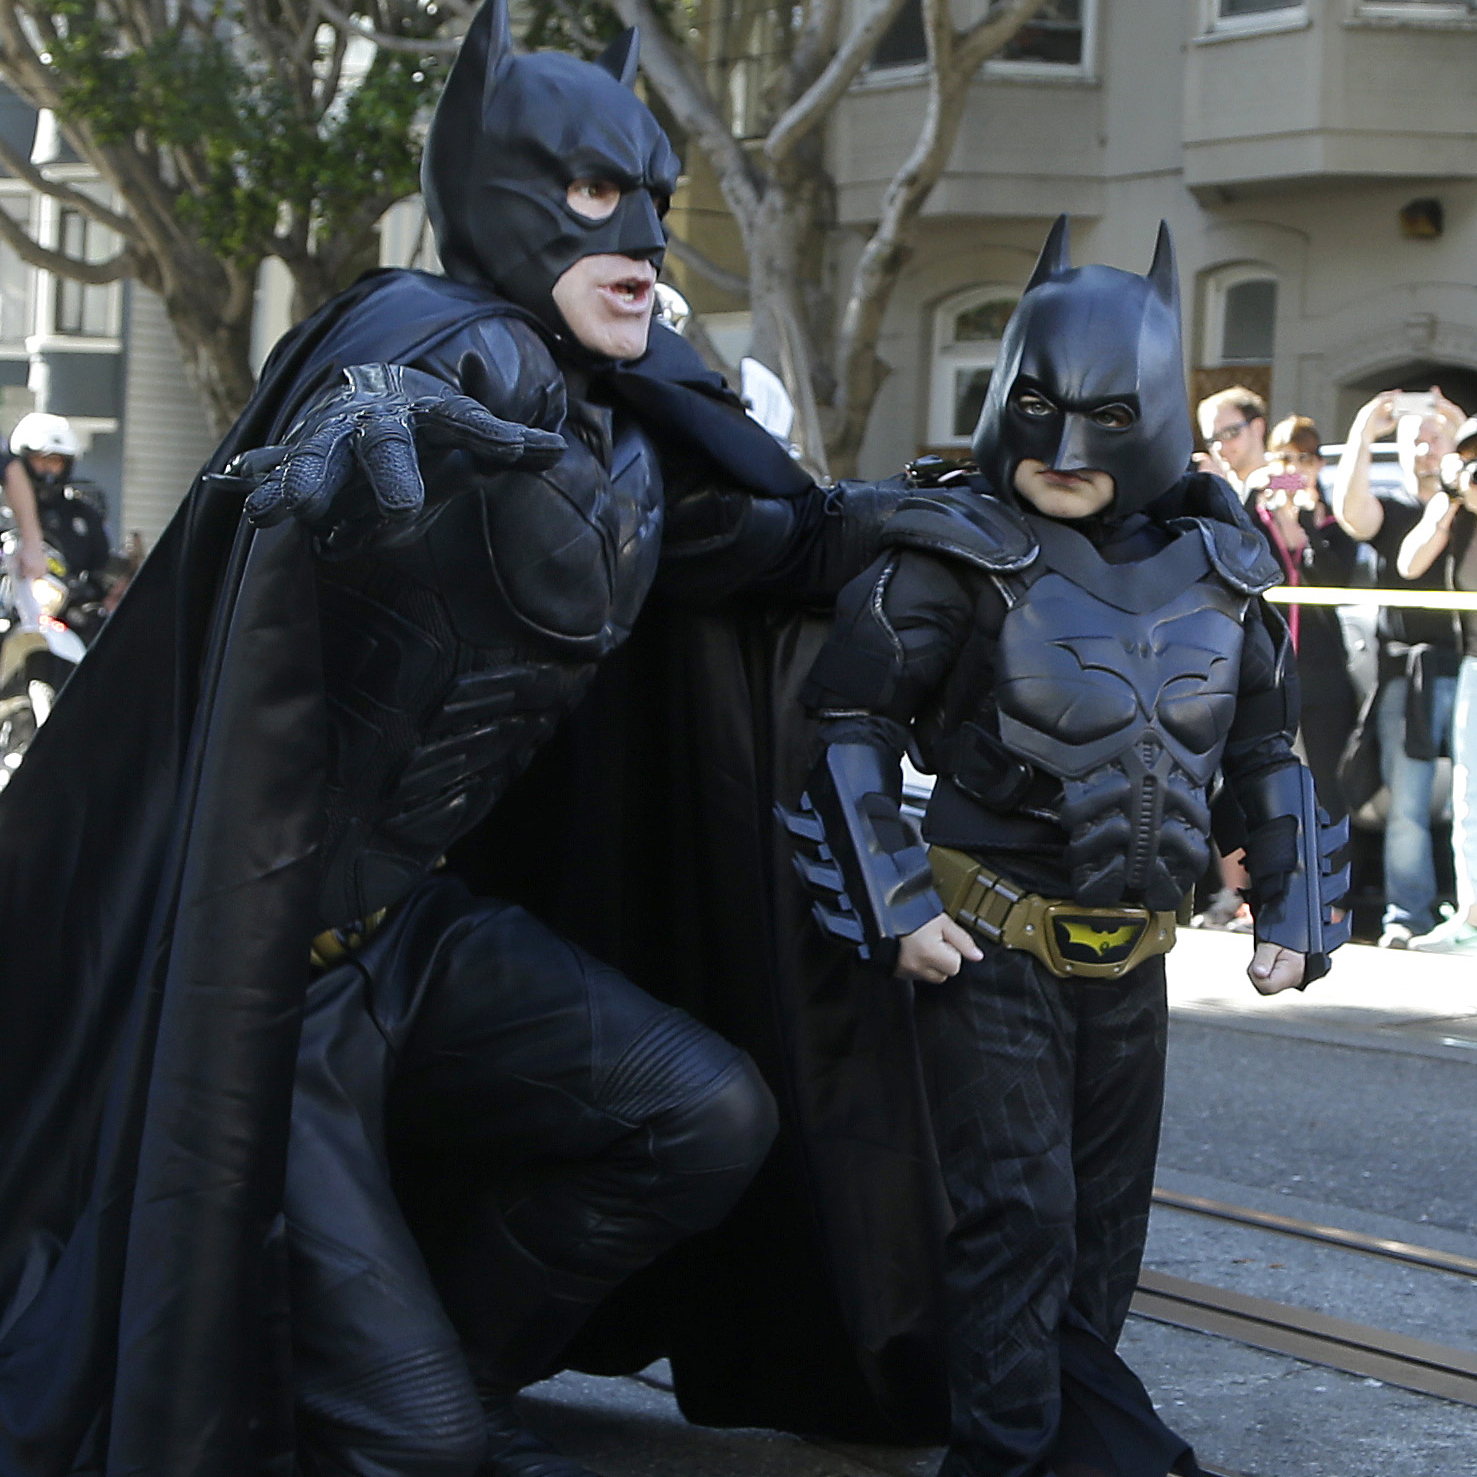 Miles Scott, dressed as Batkid, talks strategy with Batman before saving a woman from peril in San Francisco on Friday. The Make-A-Wish Foundation turned the City by the Bay into Gotham City for Miles, creating a daylong event to grant the leukemia survivor's wish to be a superhero.